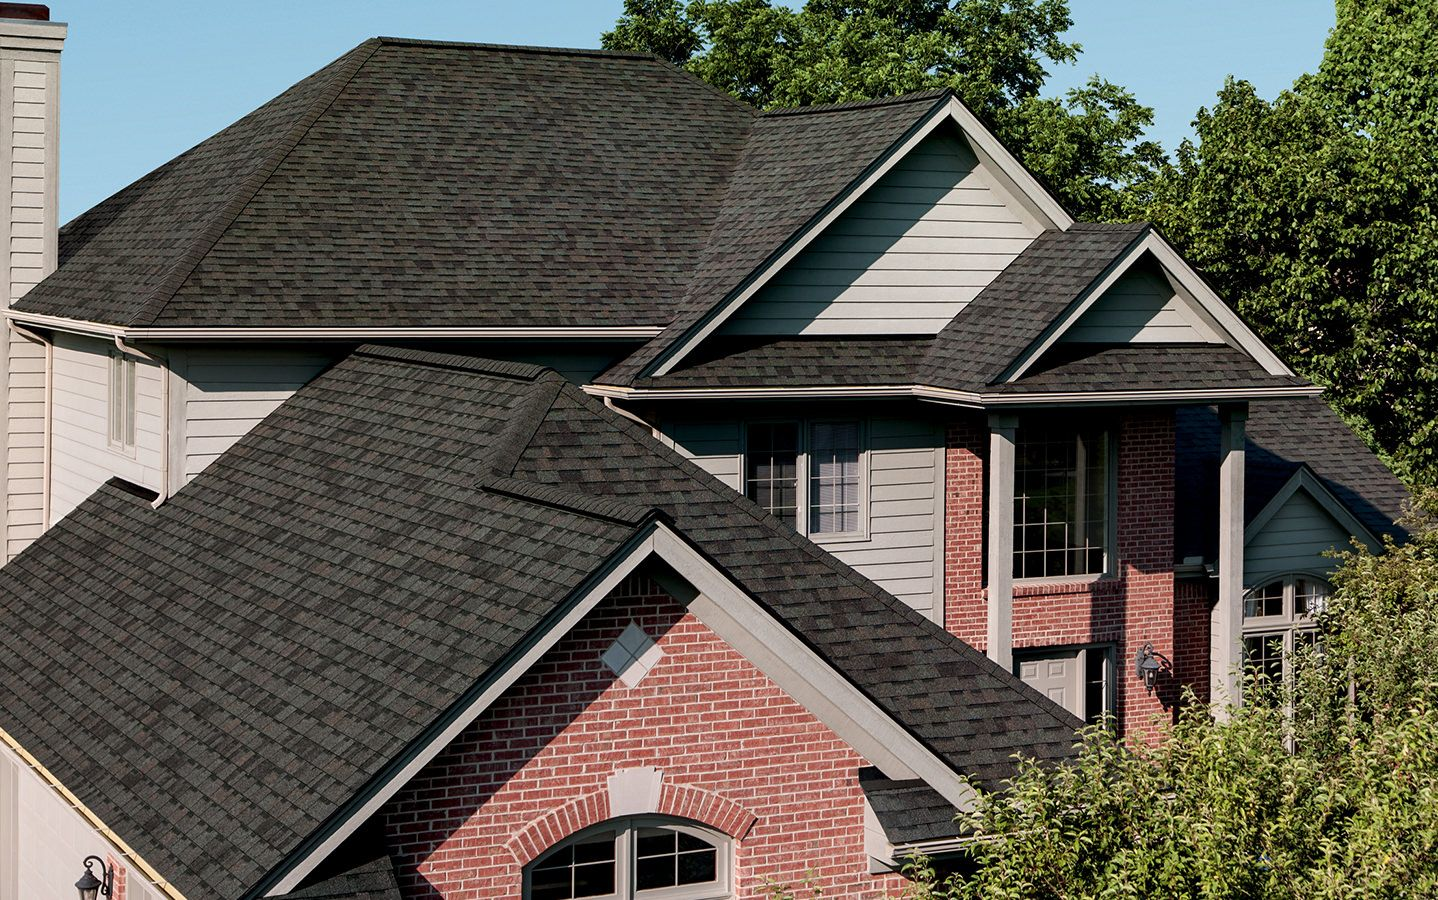 I Love This Shingle I Found This Oakridge Shingle In The Color Onyx Black Check It Out Shared From Owen Architectural Shingles Roof Shingle Colors Roof Cost